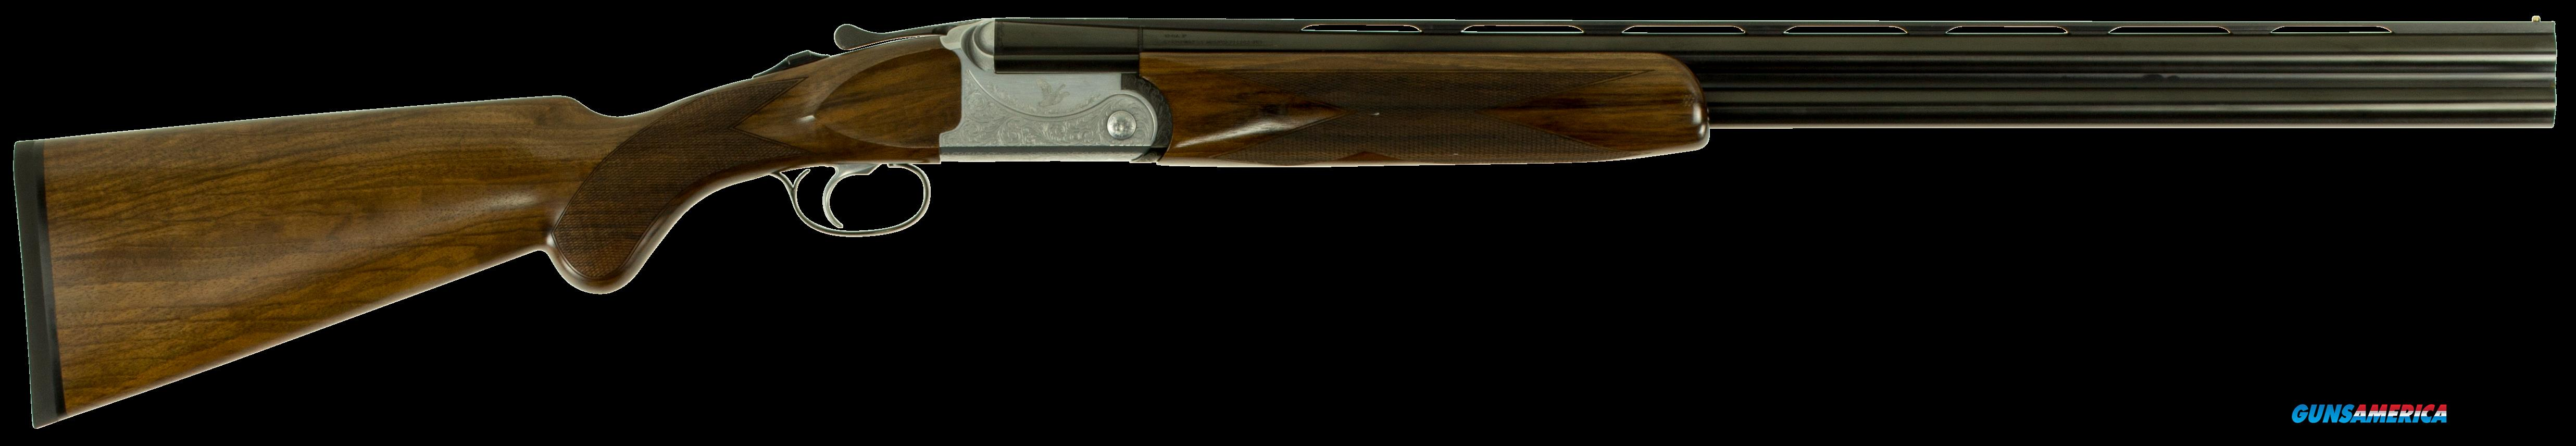 "Barrett Sovereign 92028 Rutherford Over/Under 20 Gauge 28"" 3"" Walnut Stk Engraved Steel Rcvr/Blued  Guns > Shotguns > B Misc Shotguns"